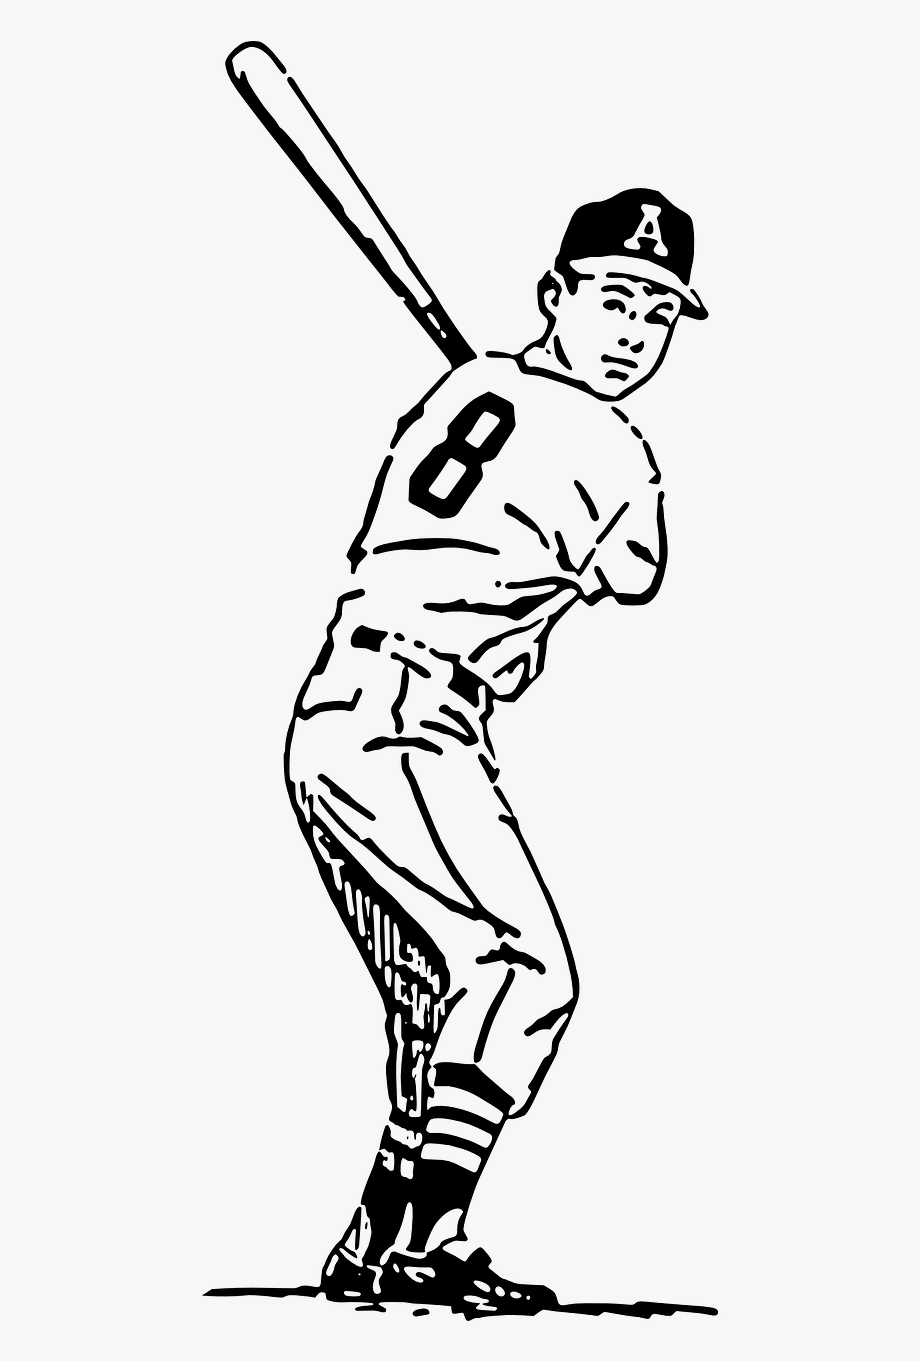 Baseball player clipart drawings picture library download Baseball Player Batter Hitting Png Image - Baseball Player Cartoon ... picture library download